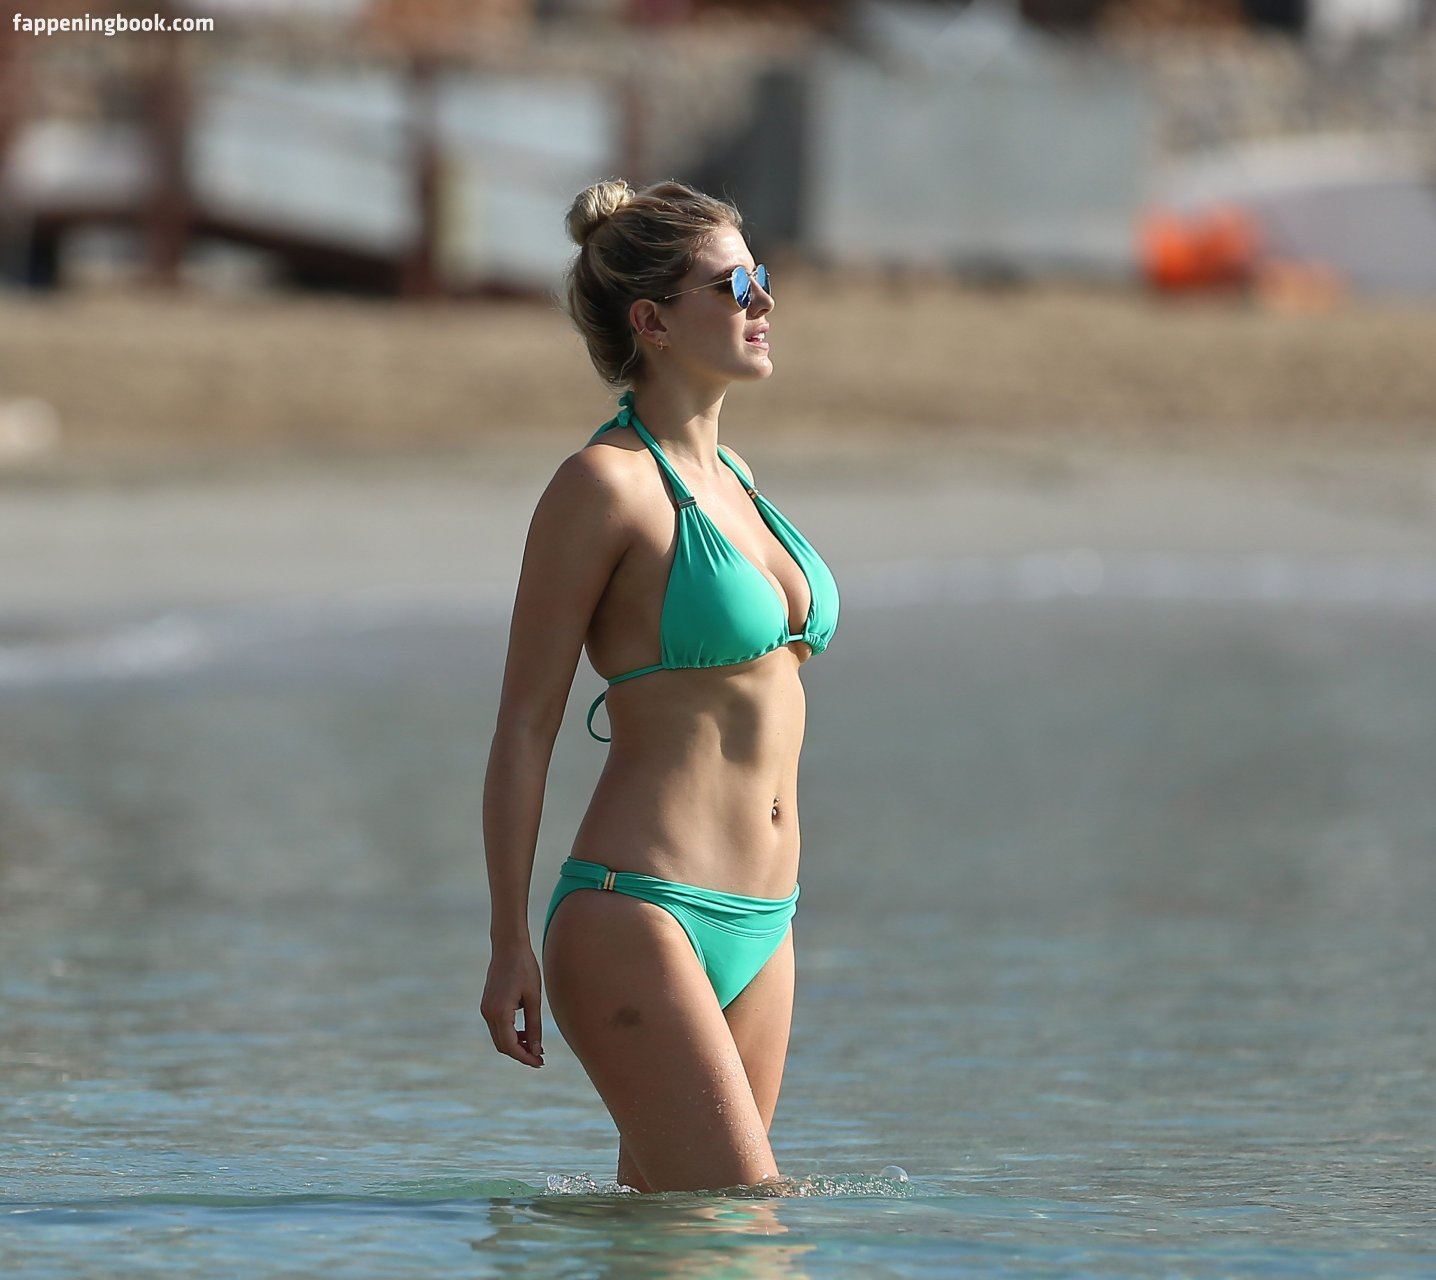 Ashley James TheFappening Topless And Sexy | #The Fappening